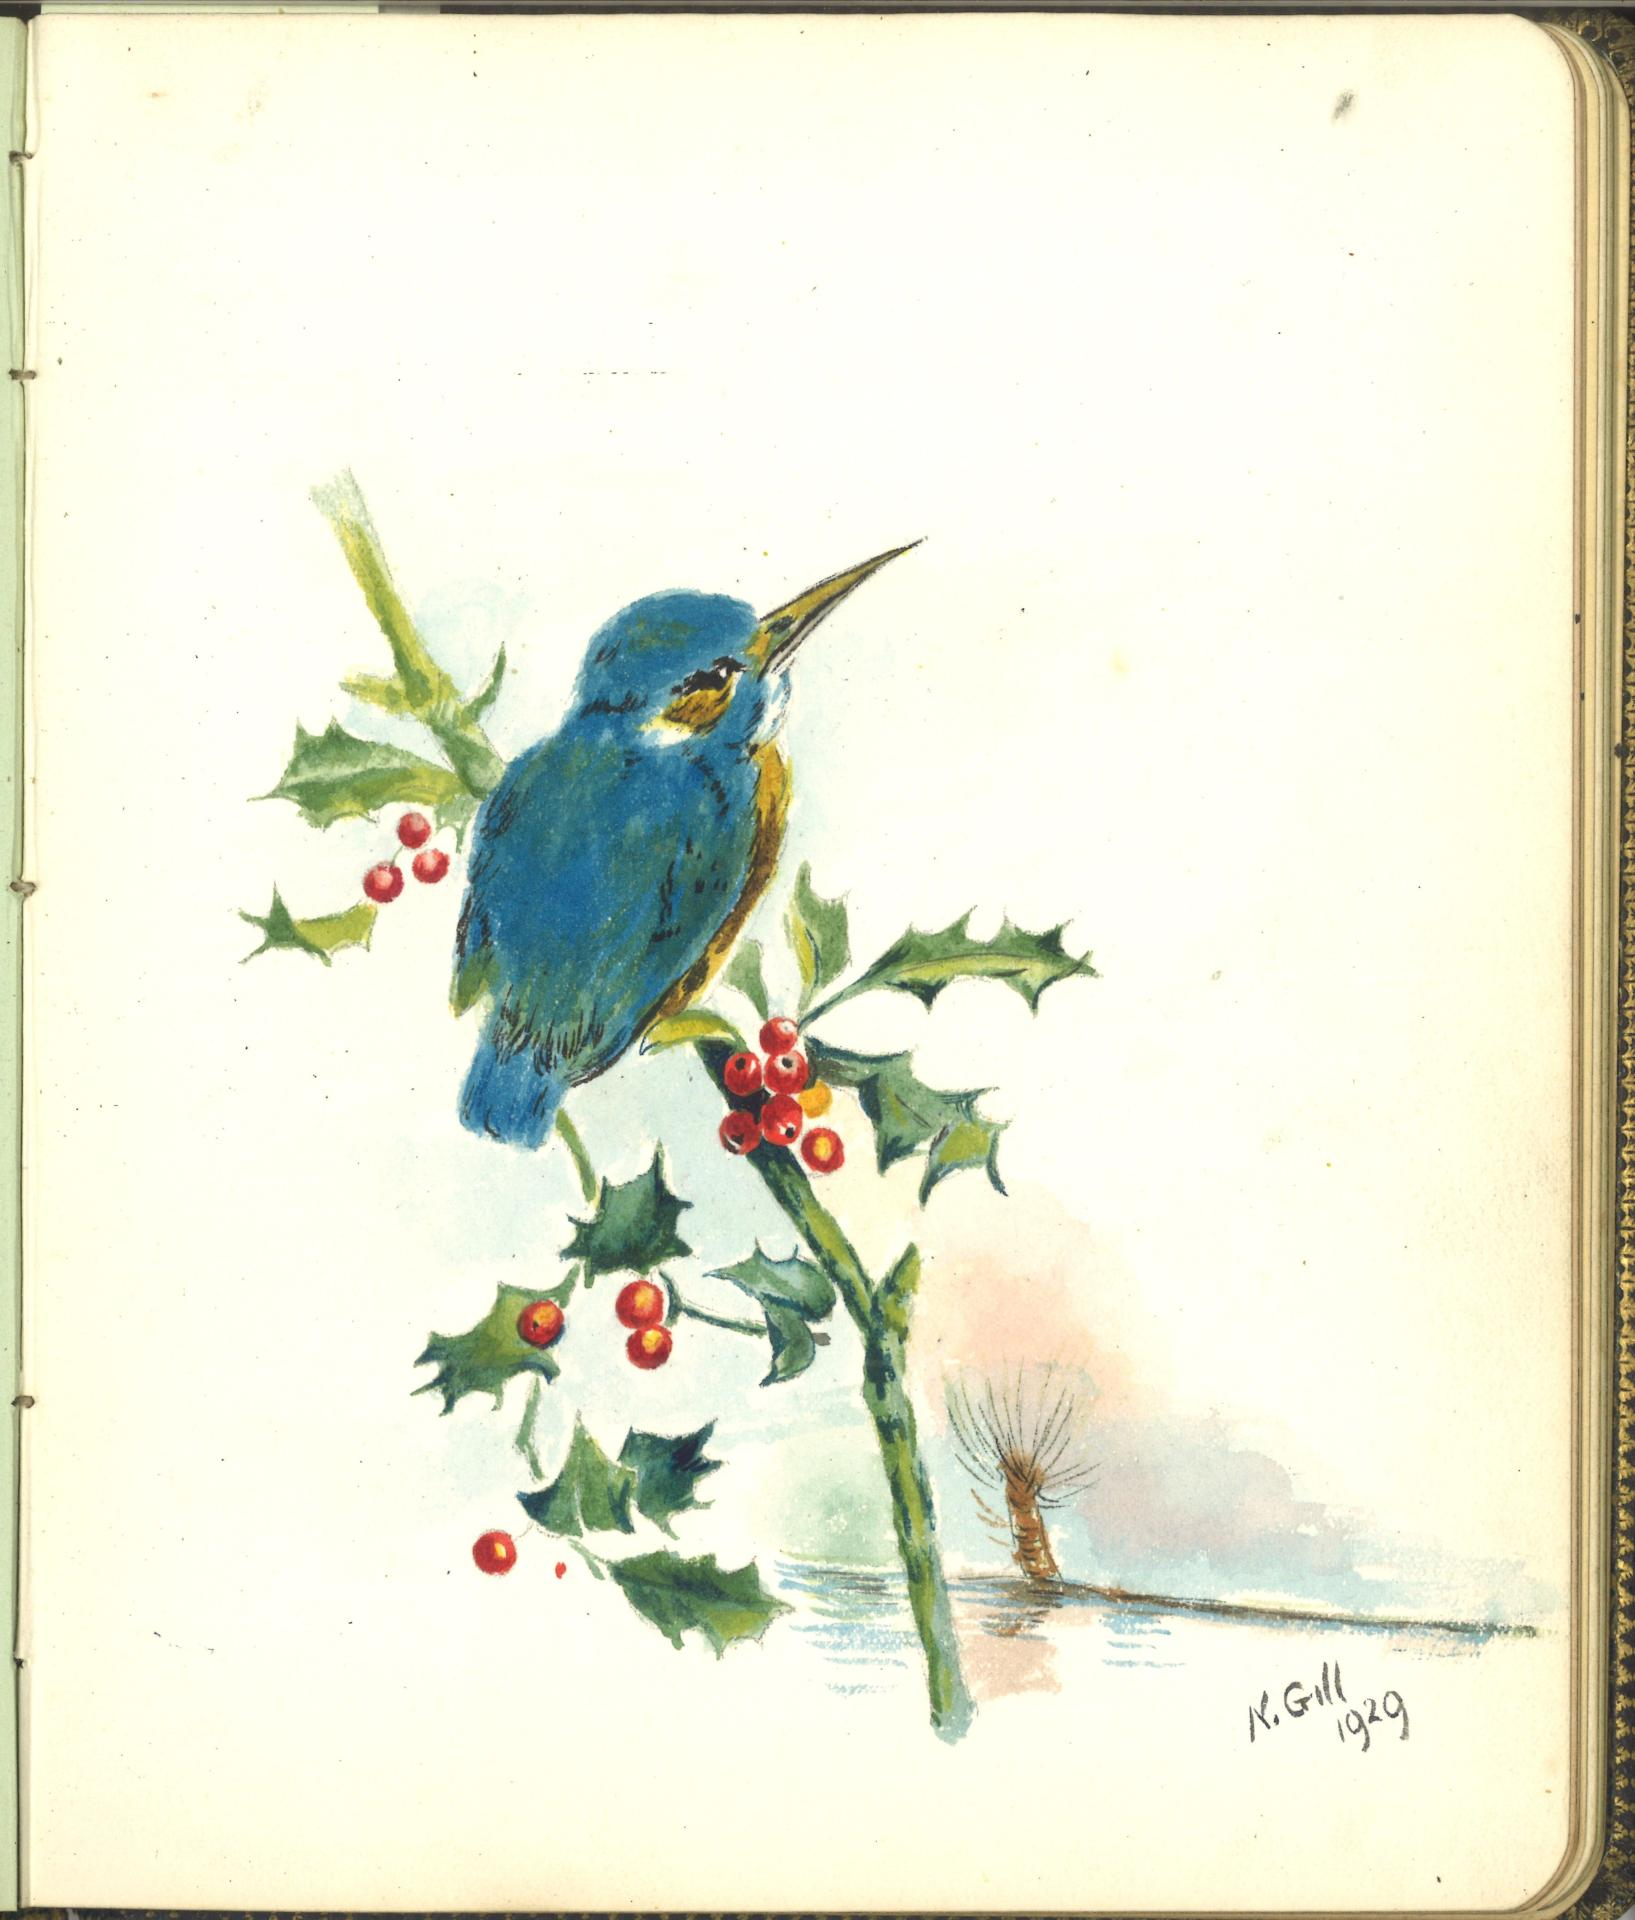 An image of a sketch of kingfisher